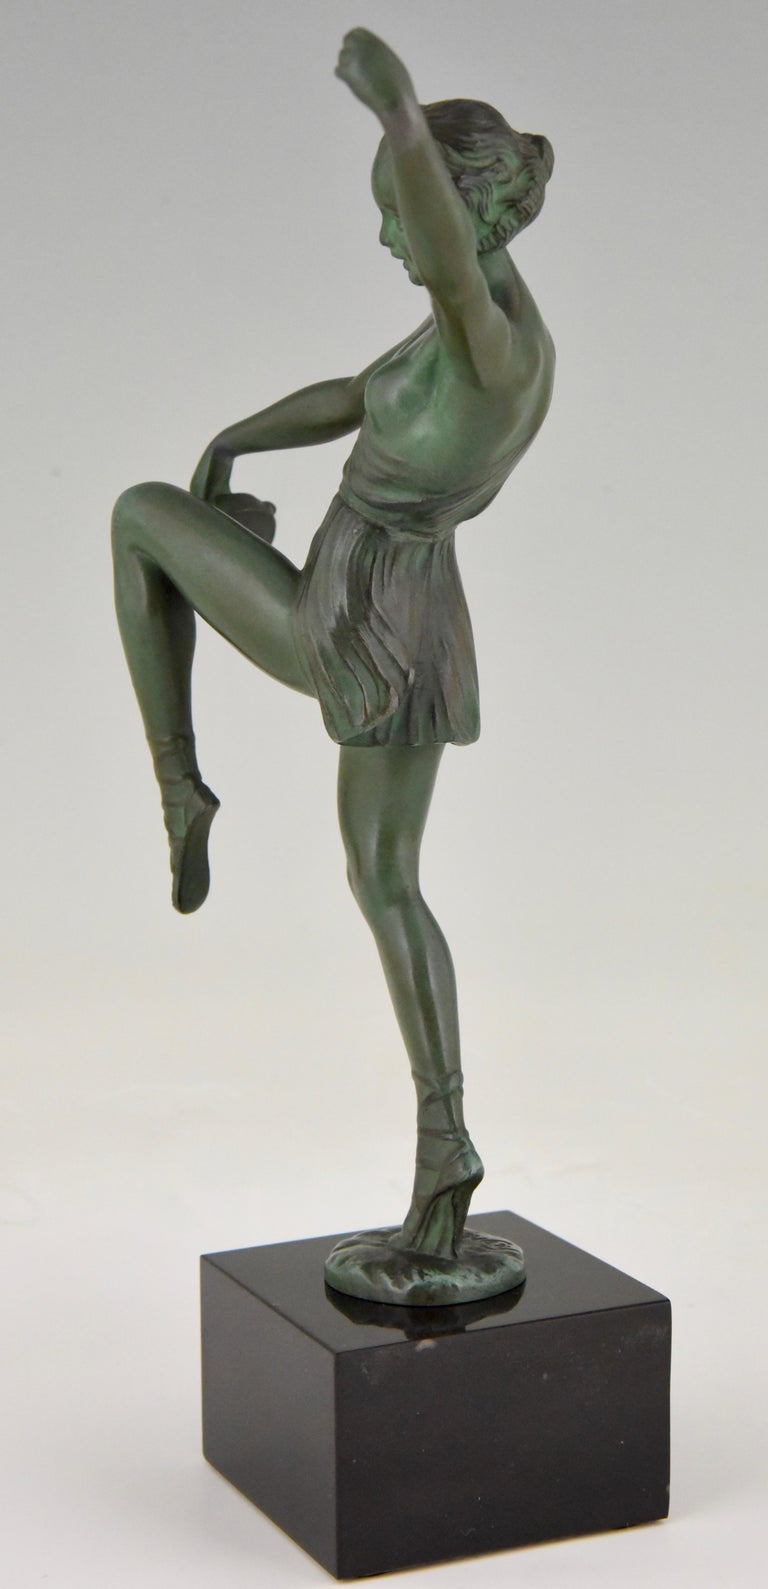 Patinated Art Deco Sculpture Dancer with Tambourine Fayral Pierre Le Faguays, France, 1930 For Sale